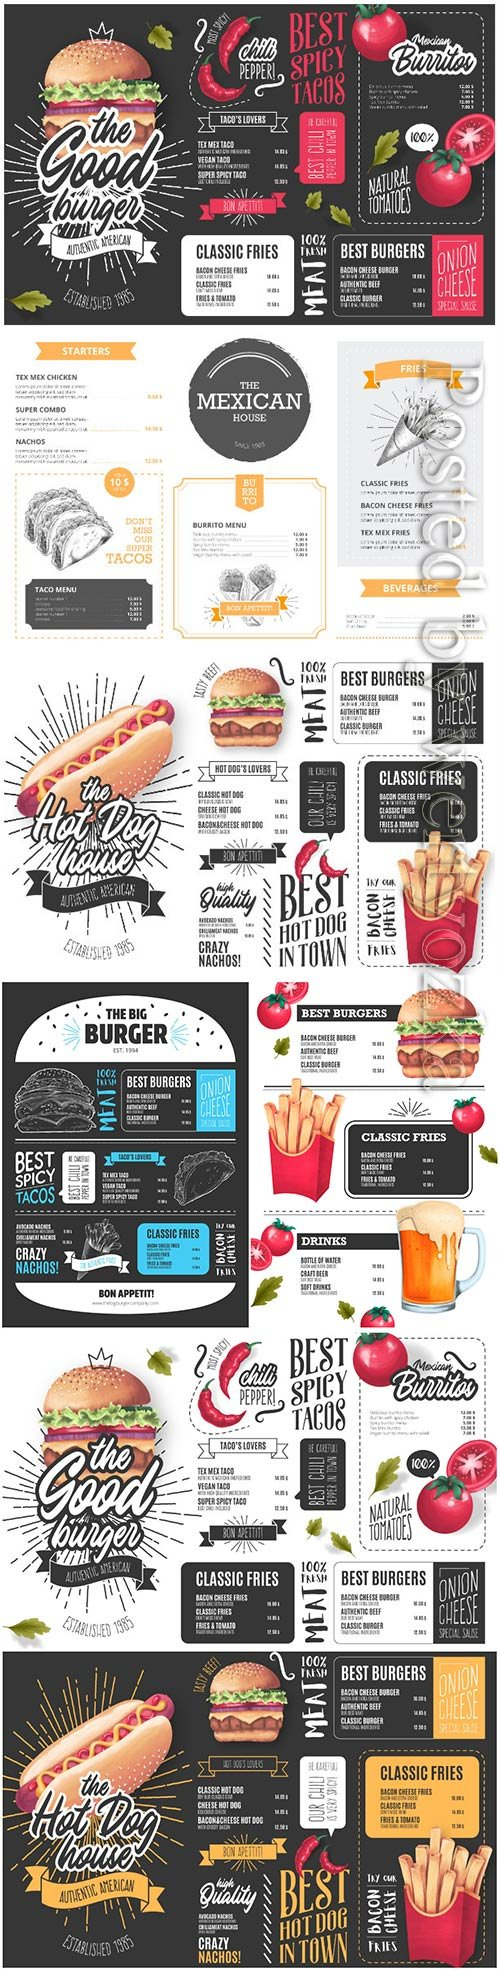 Vector restaurant menu template with illustrations